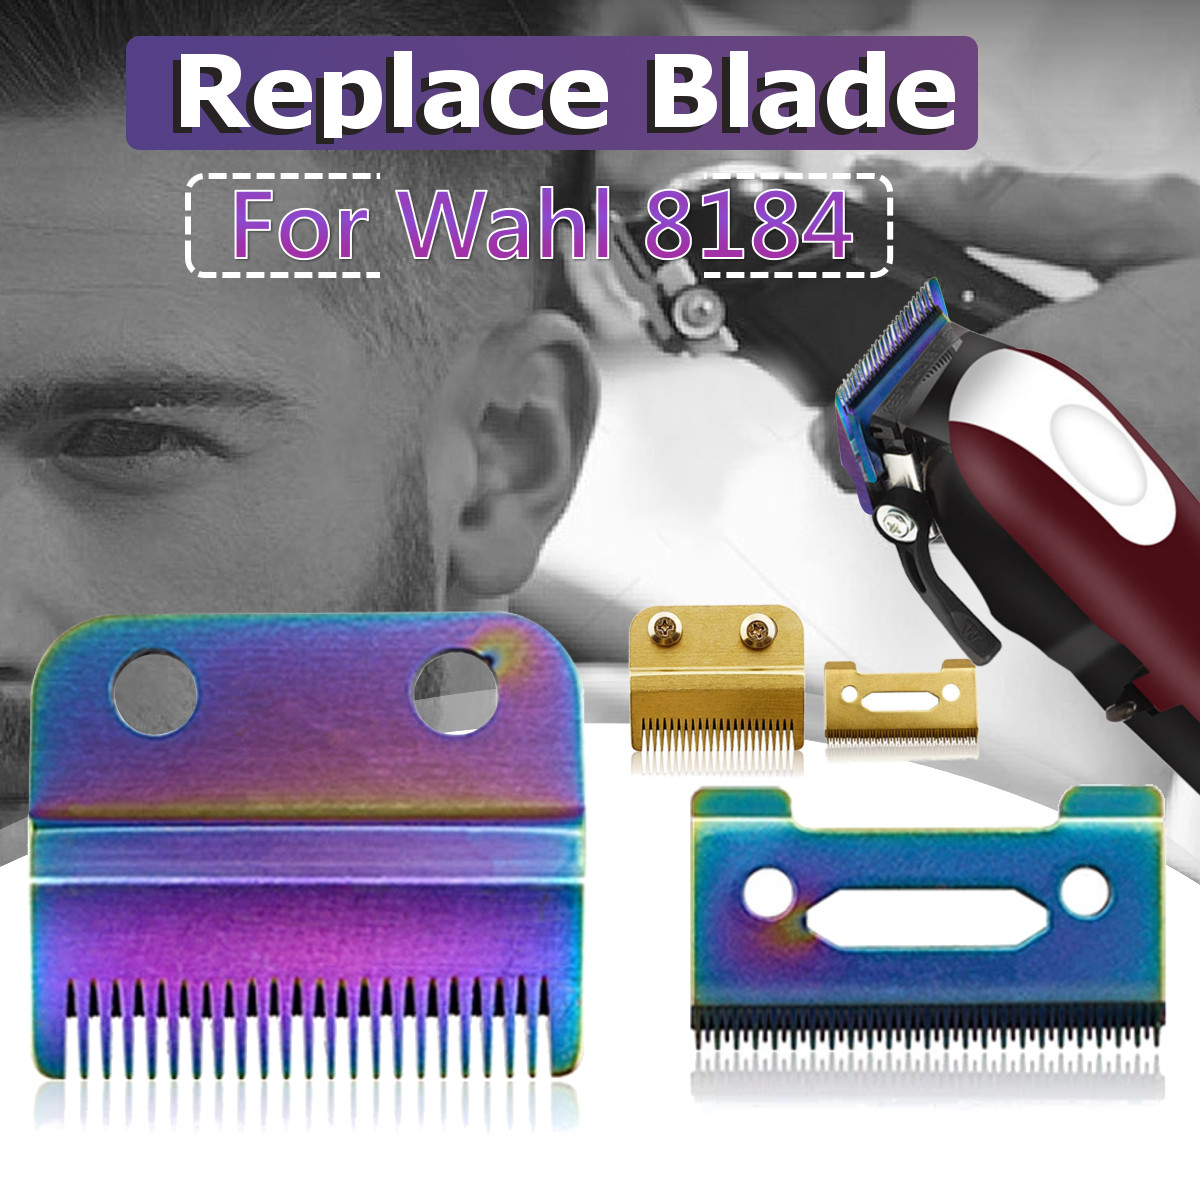 Movable Blade Professional Hair Clipper Blade Replace Cutter Head Metal Bottom Clipper Accessories Golden Blade For Wahl 8148